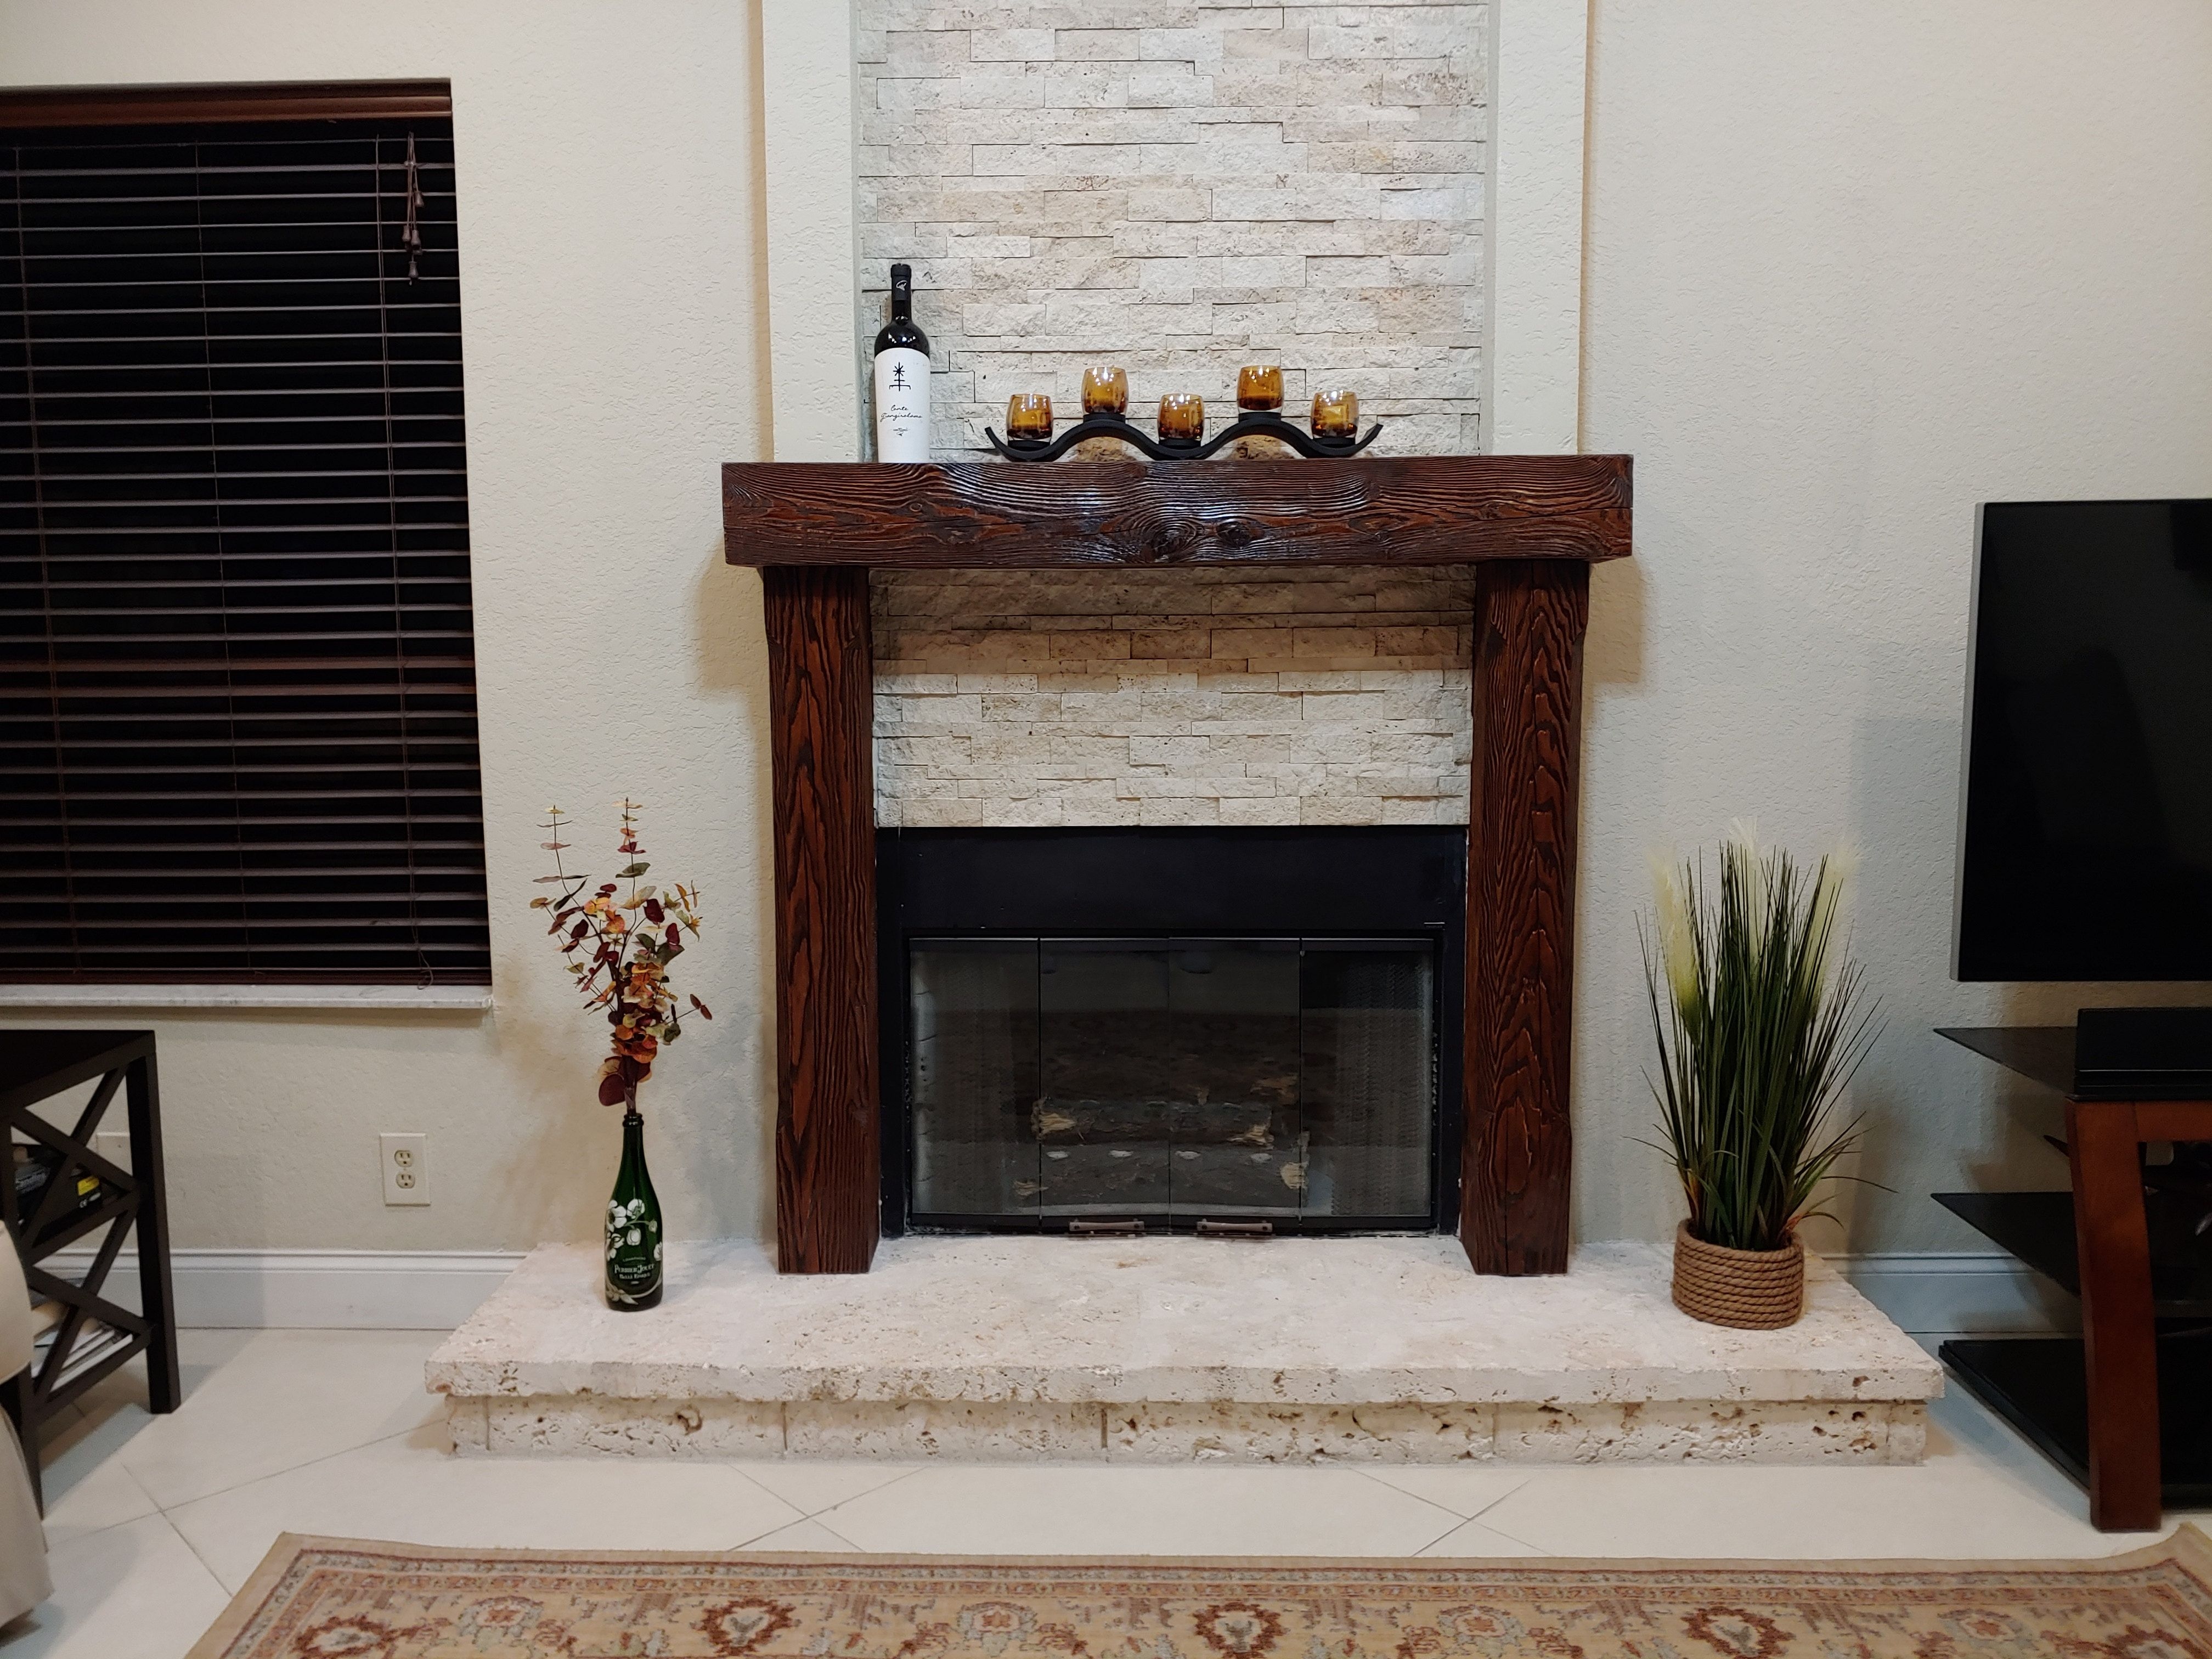 Rustic Full 6 X 8 Wood Beam Fireplace Mantel With Legs Wood Beams Fireplace Mantels Fireplace